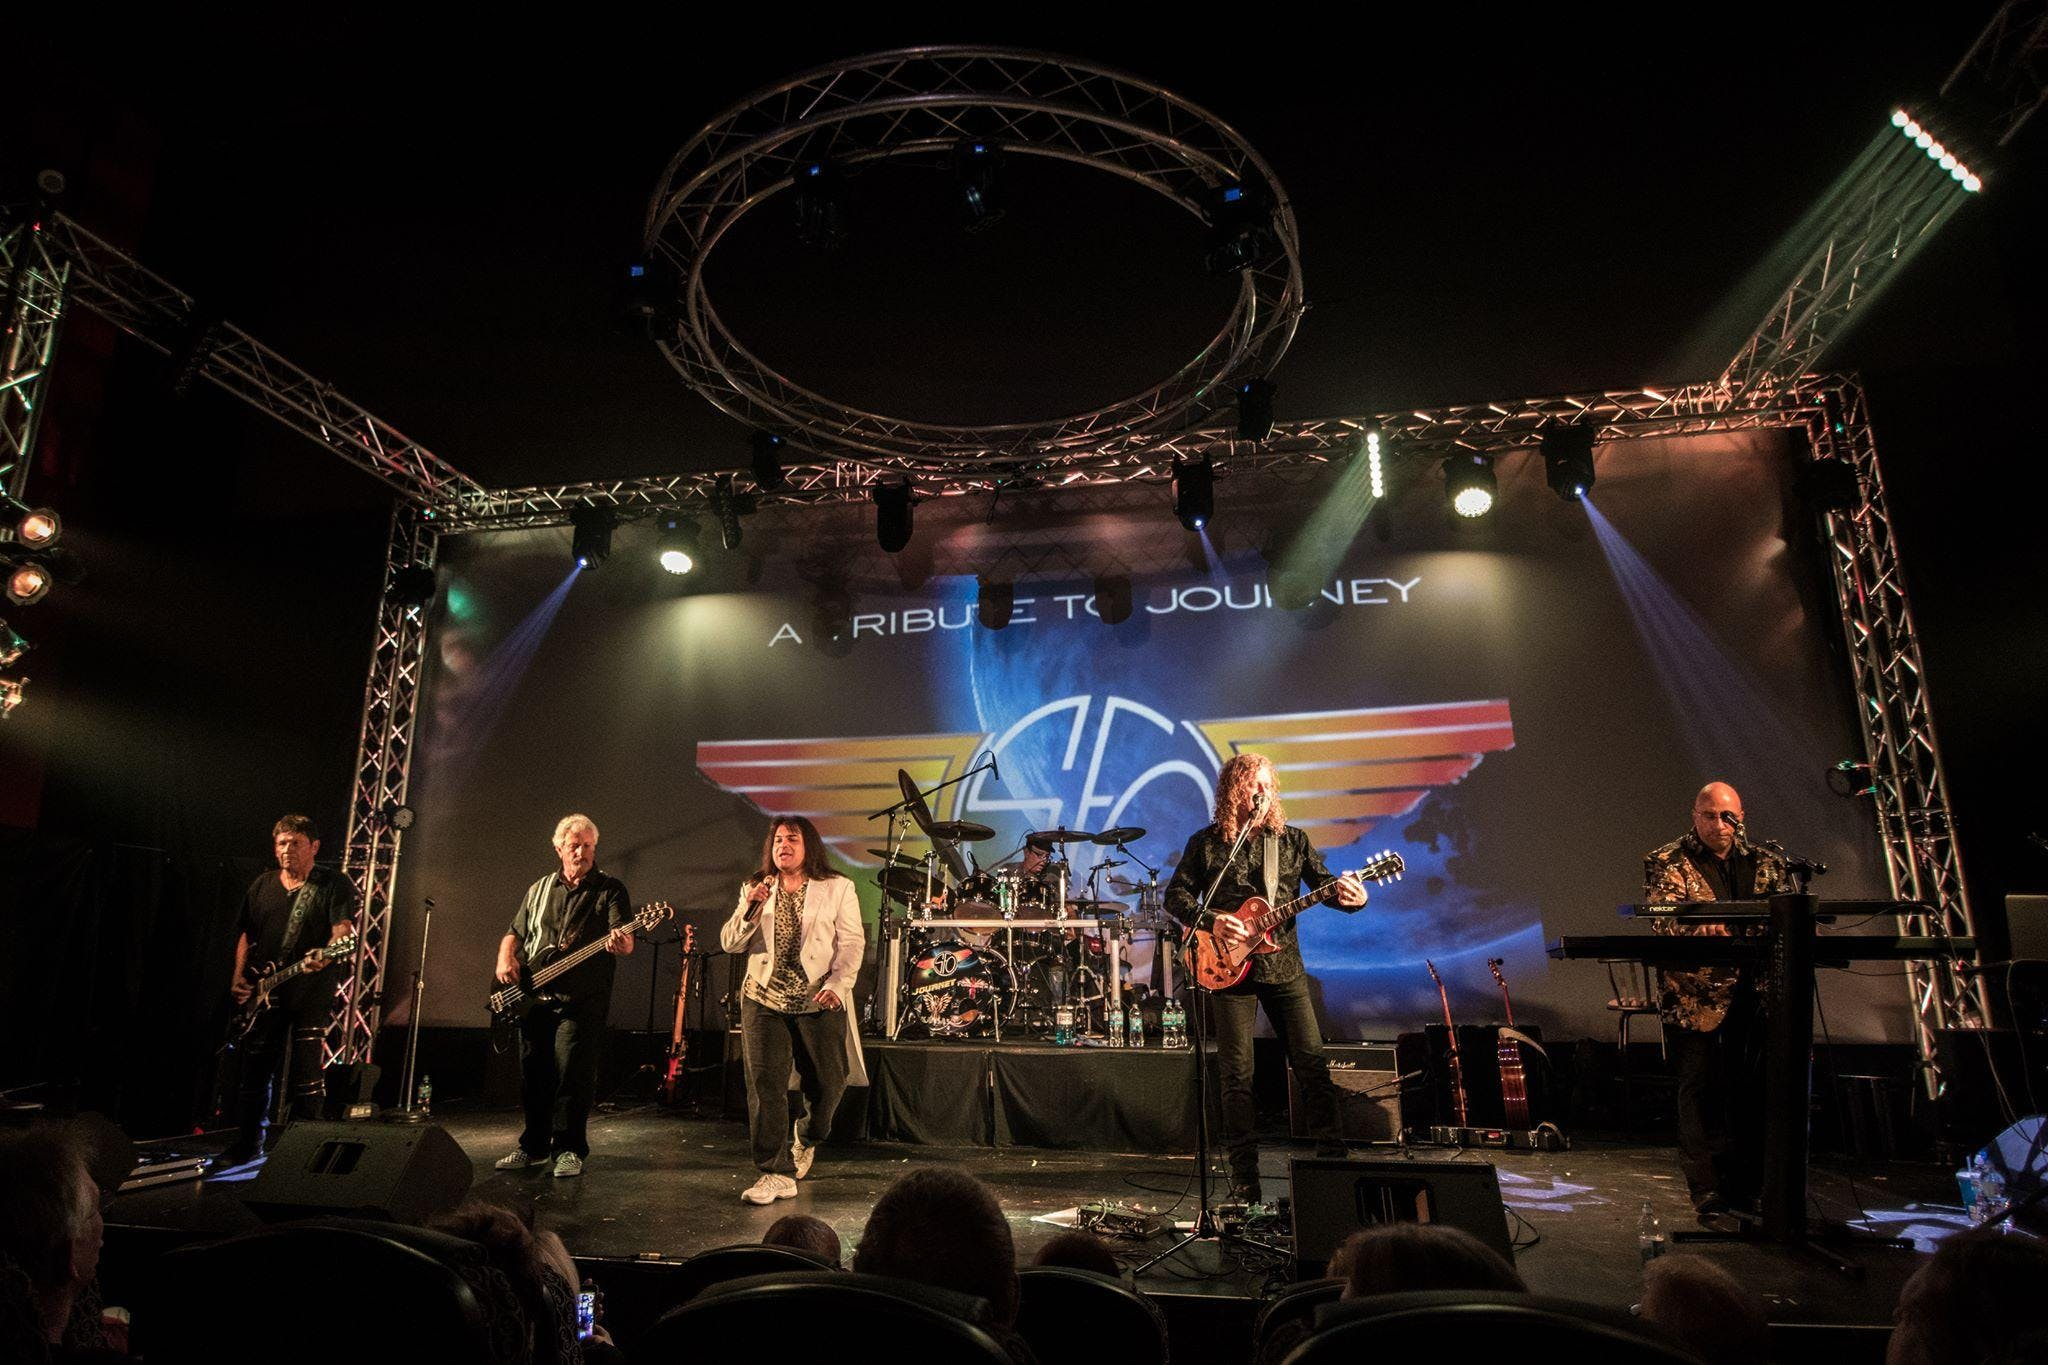 SFO - A Tribute to Journey at TAK Music Venue